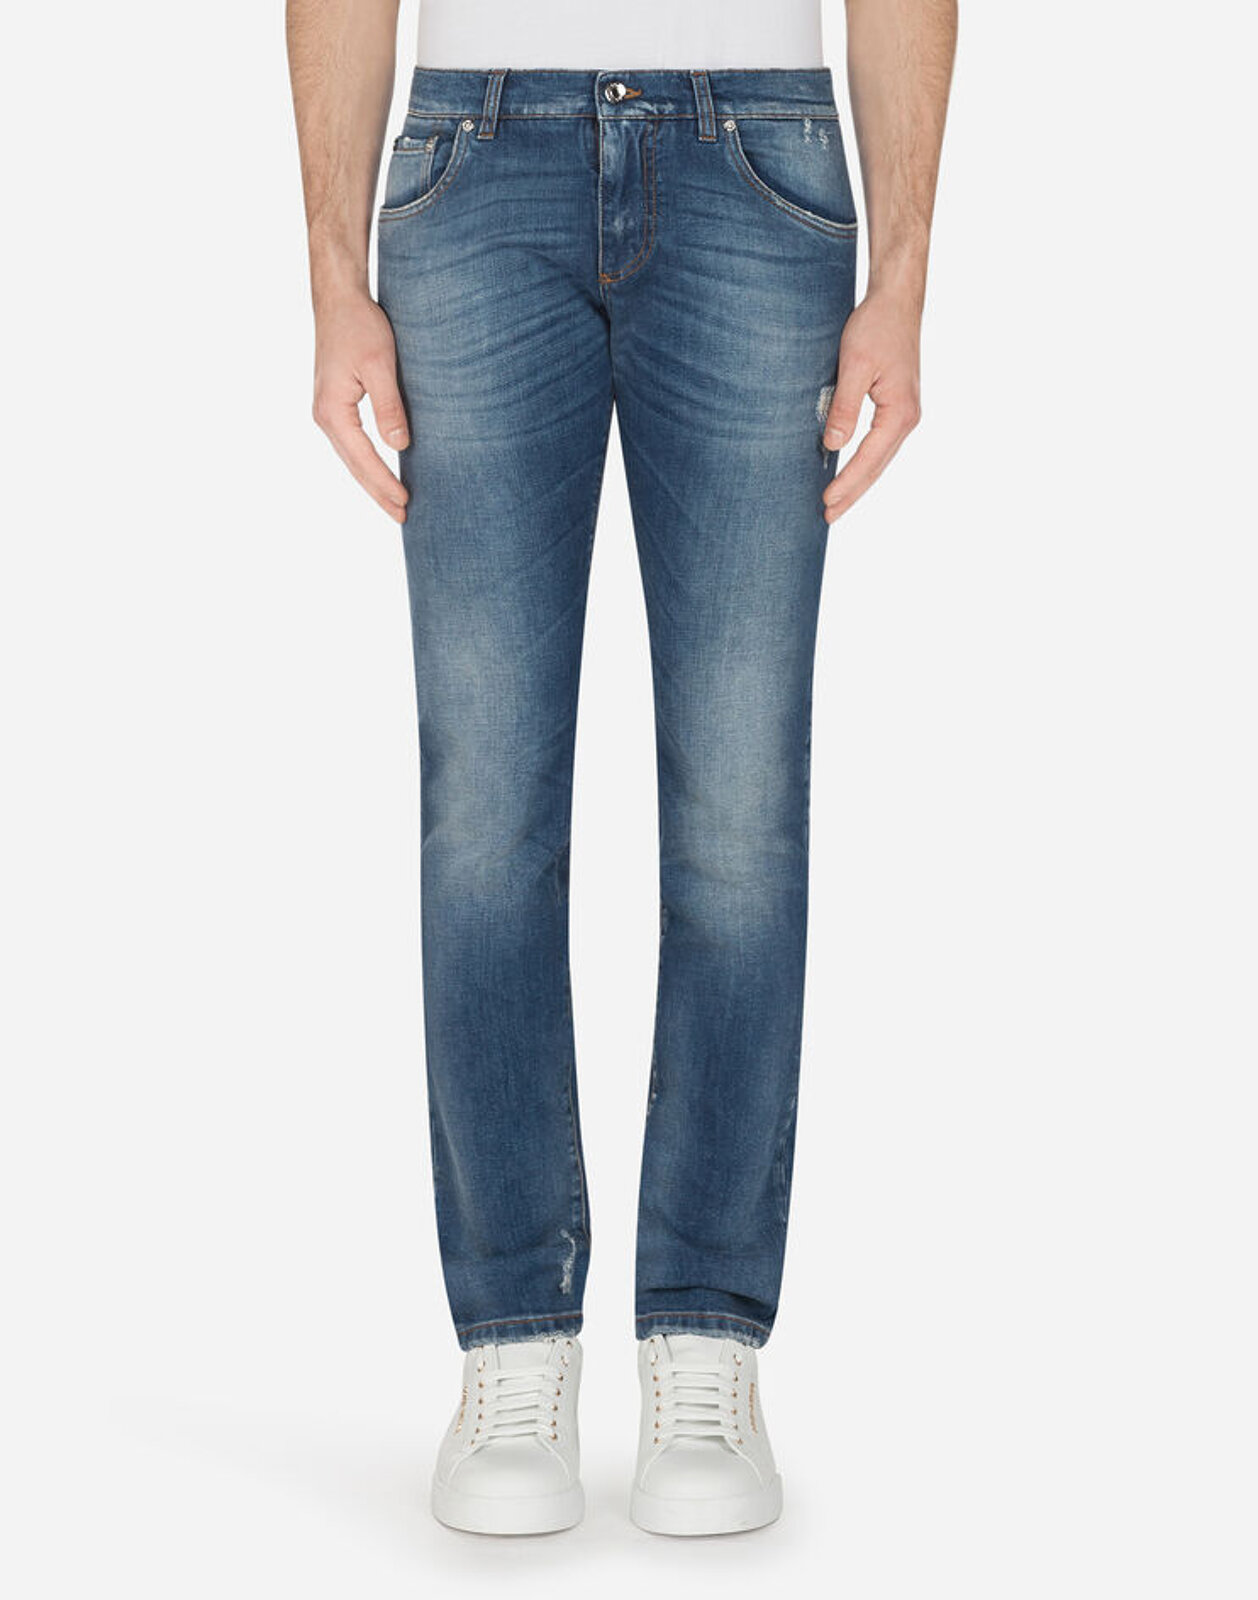 Stretch Skinny Jeans Printed Cotton Details - Dolce & Gabbana